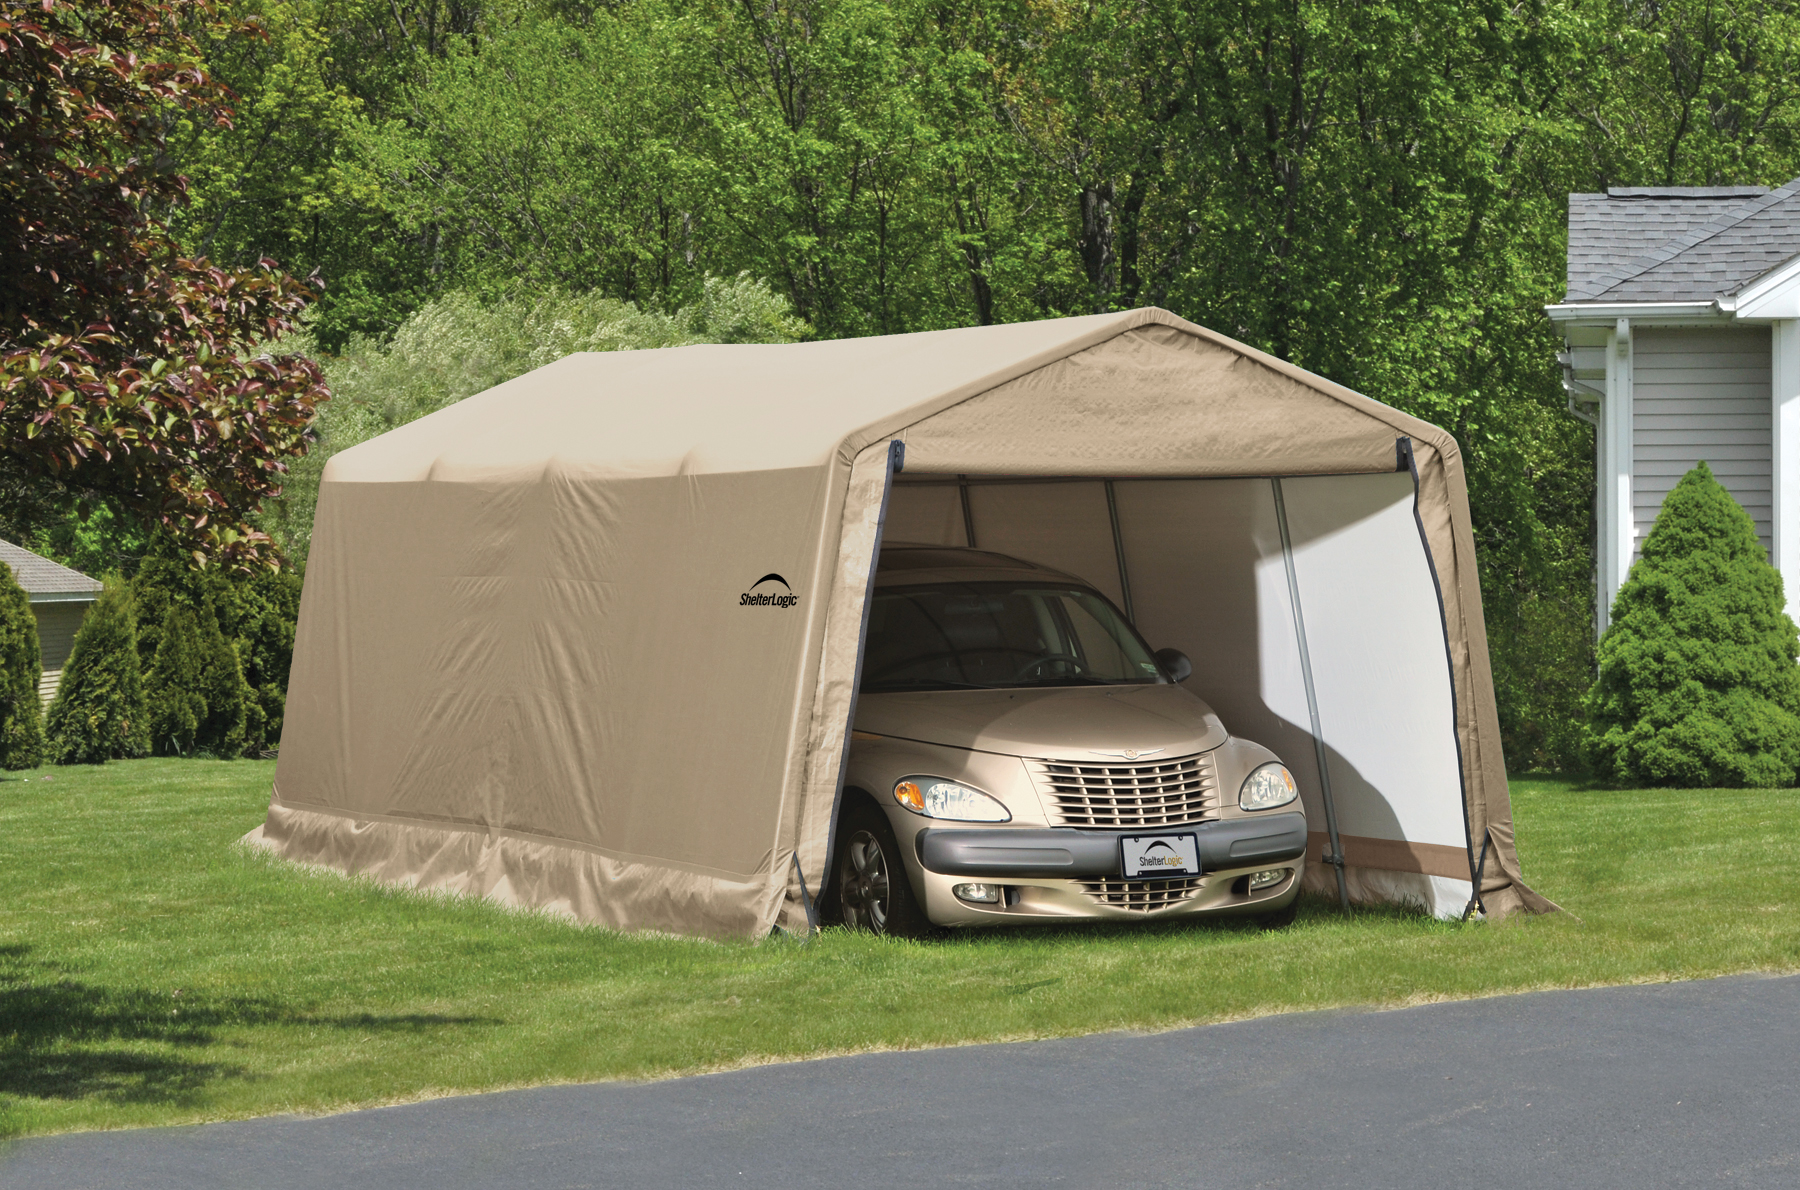 Small Metal Shelters : Shelterlogic portable car garage shelters